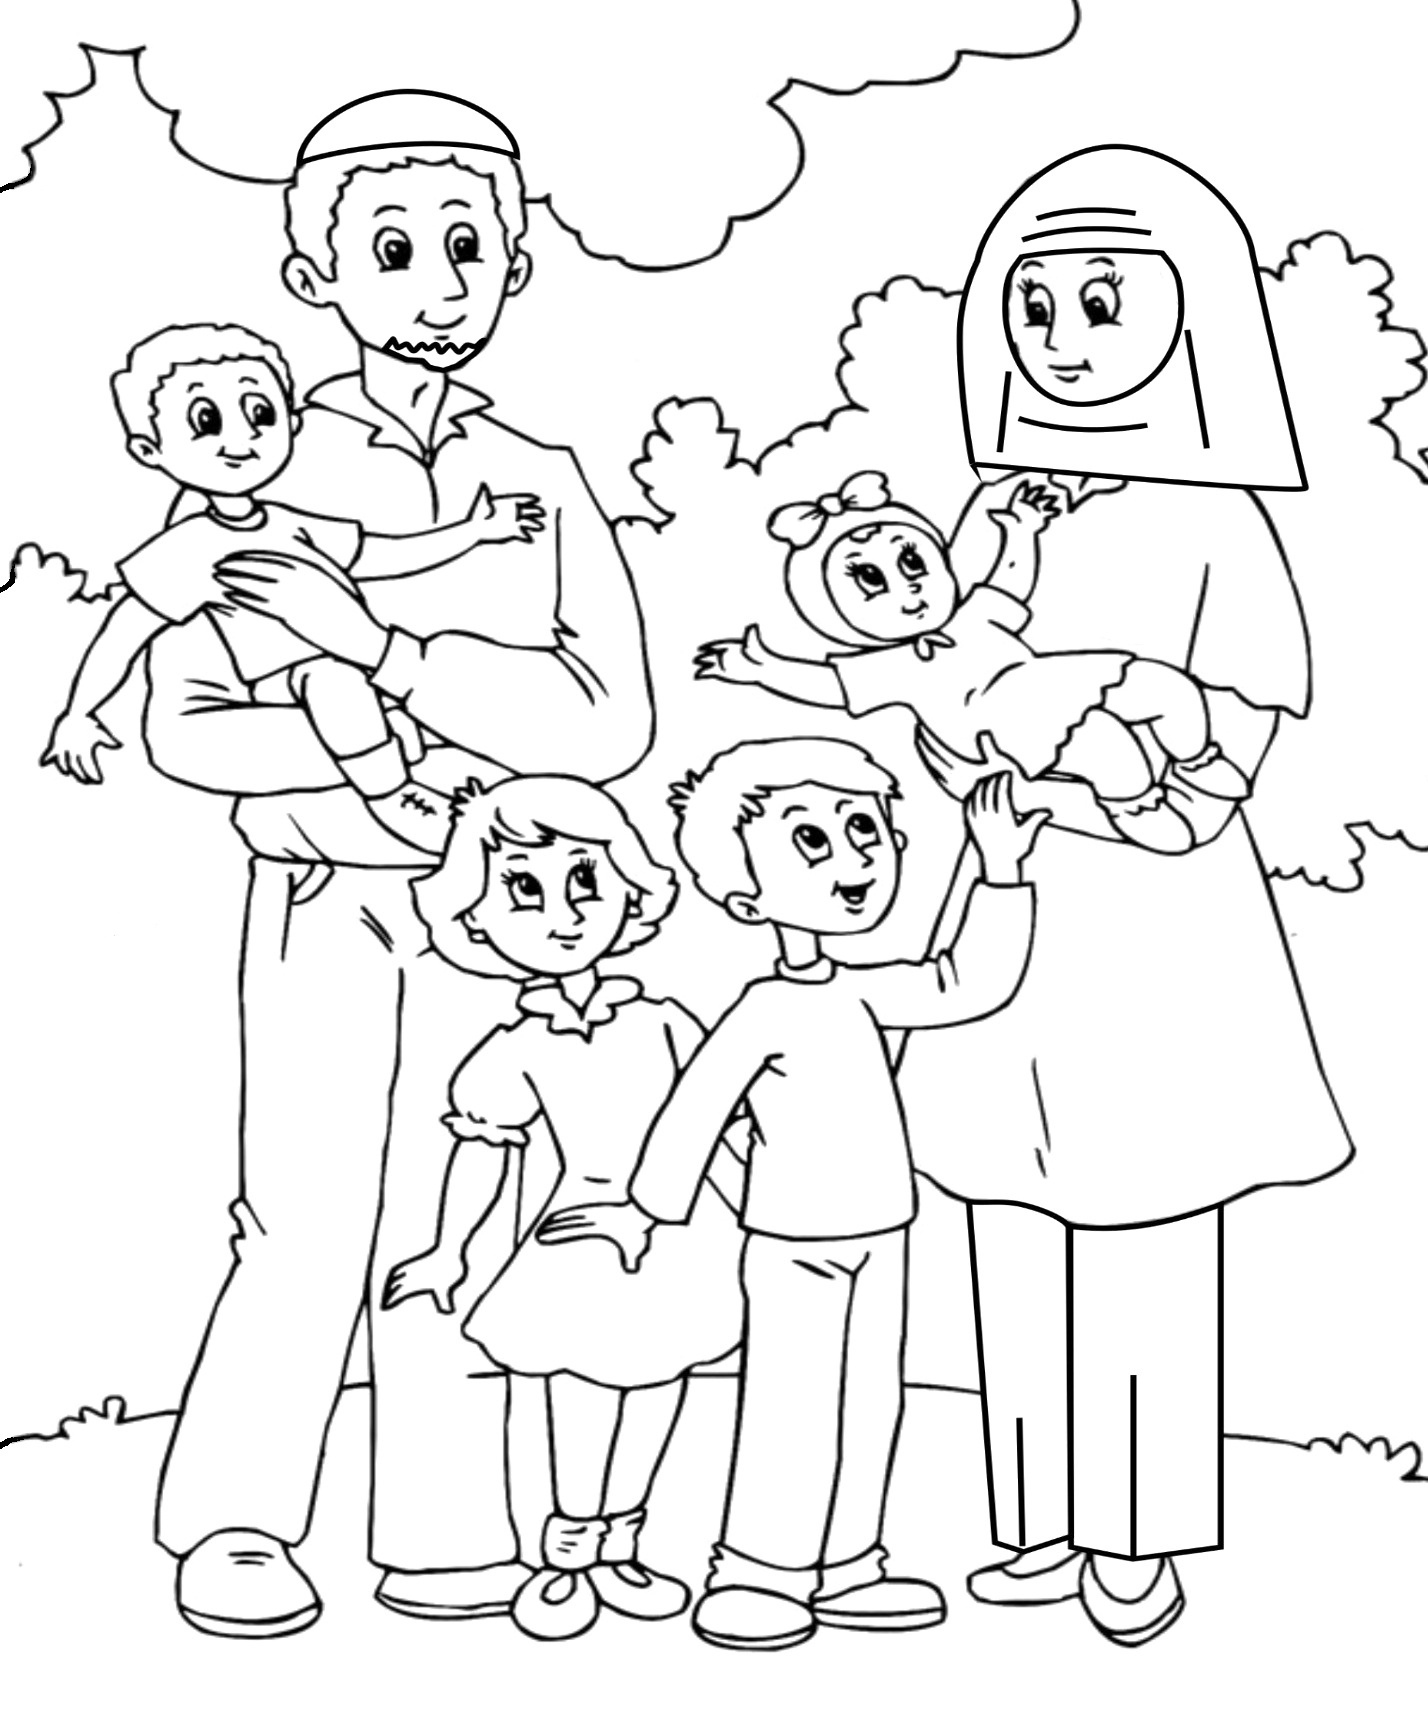 Me And My Family Drawing At Getdrawings Com Free For